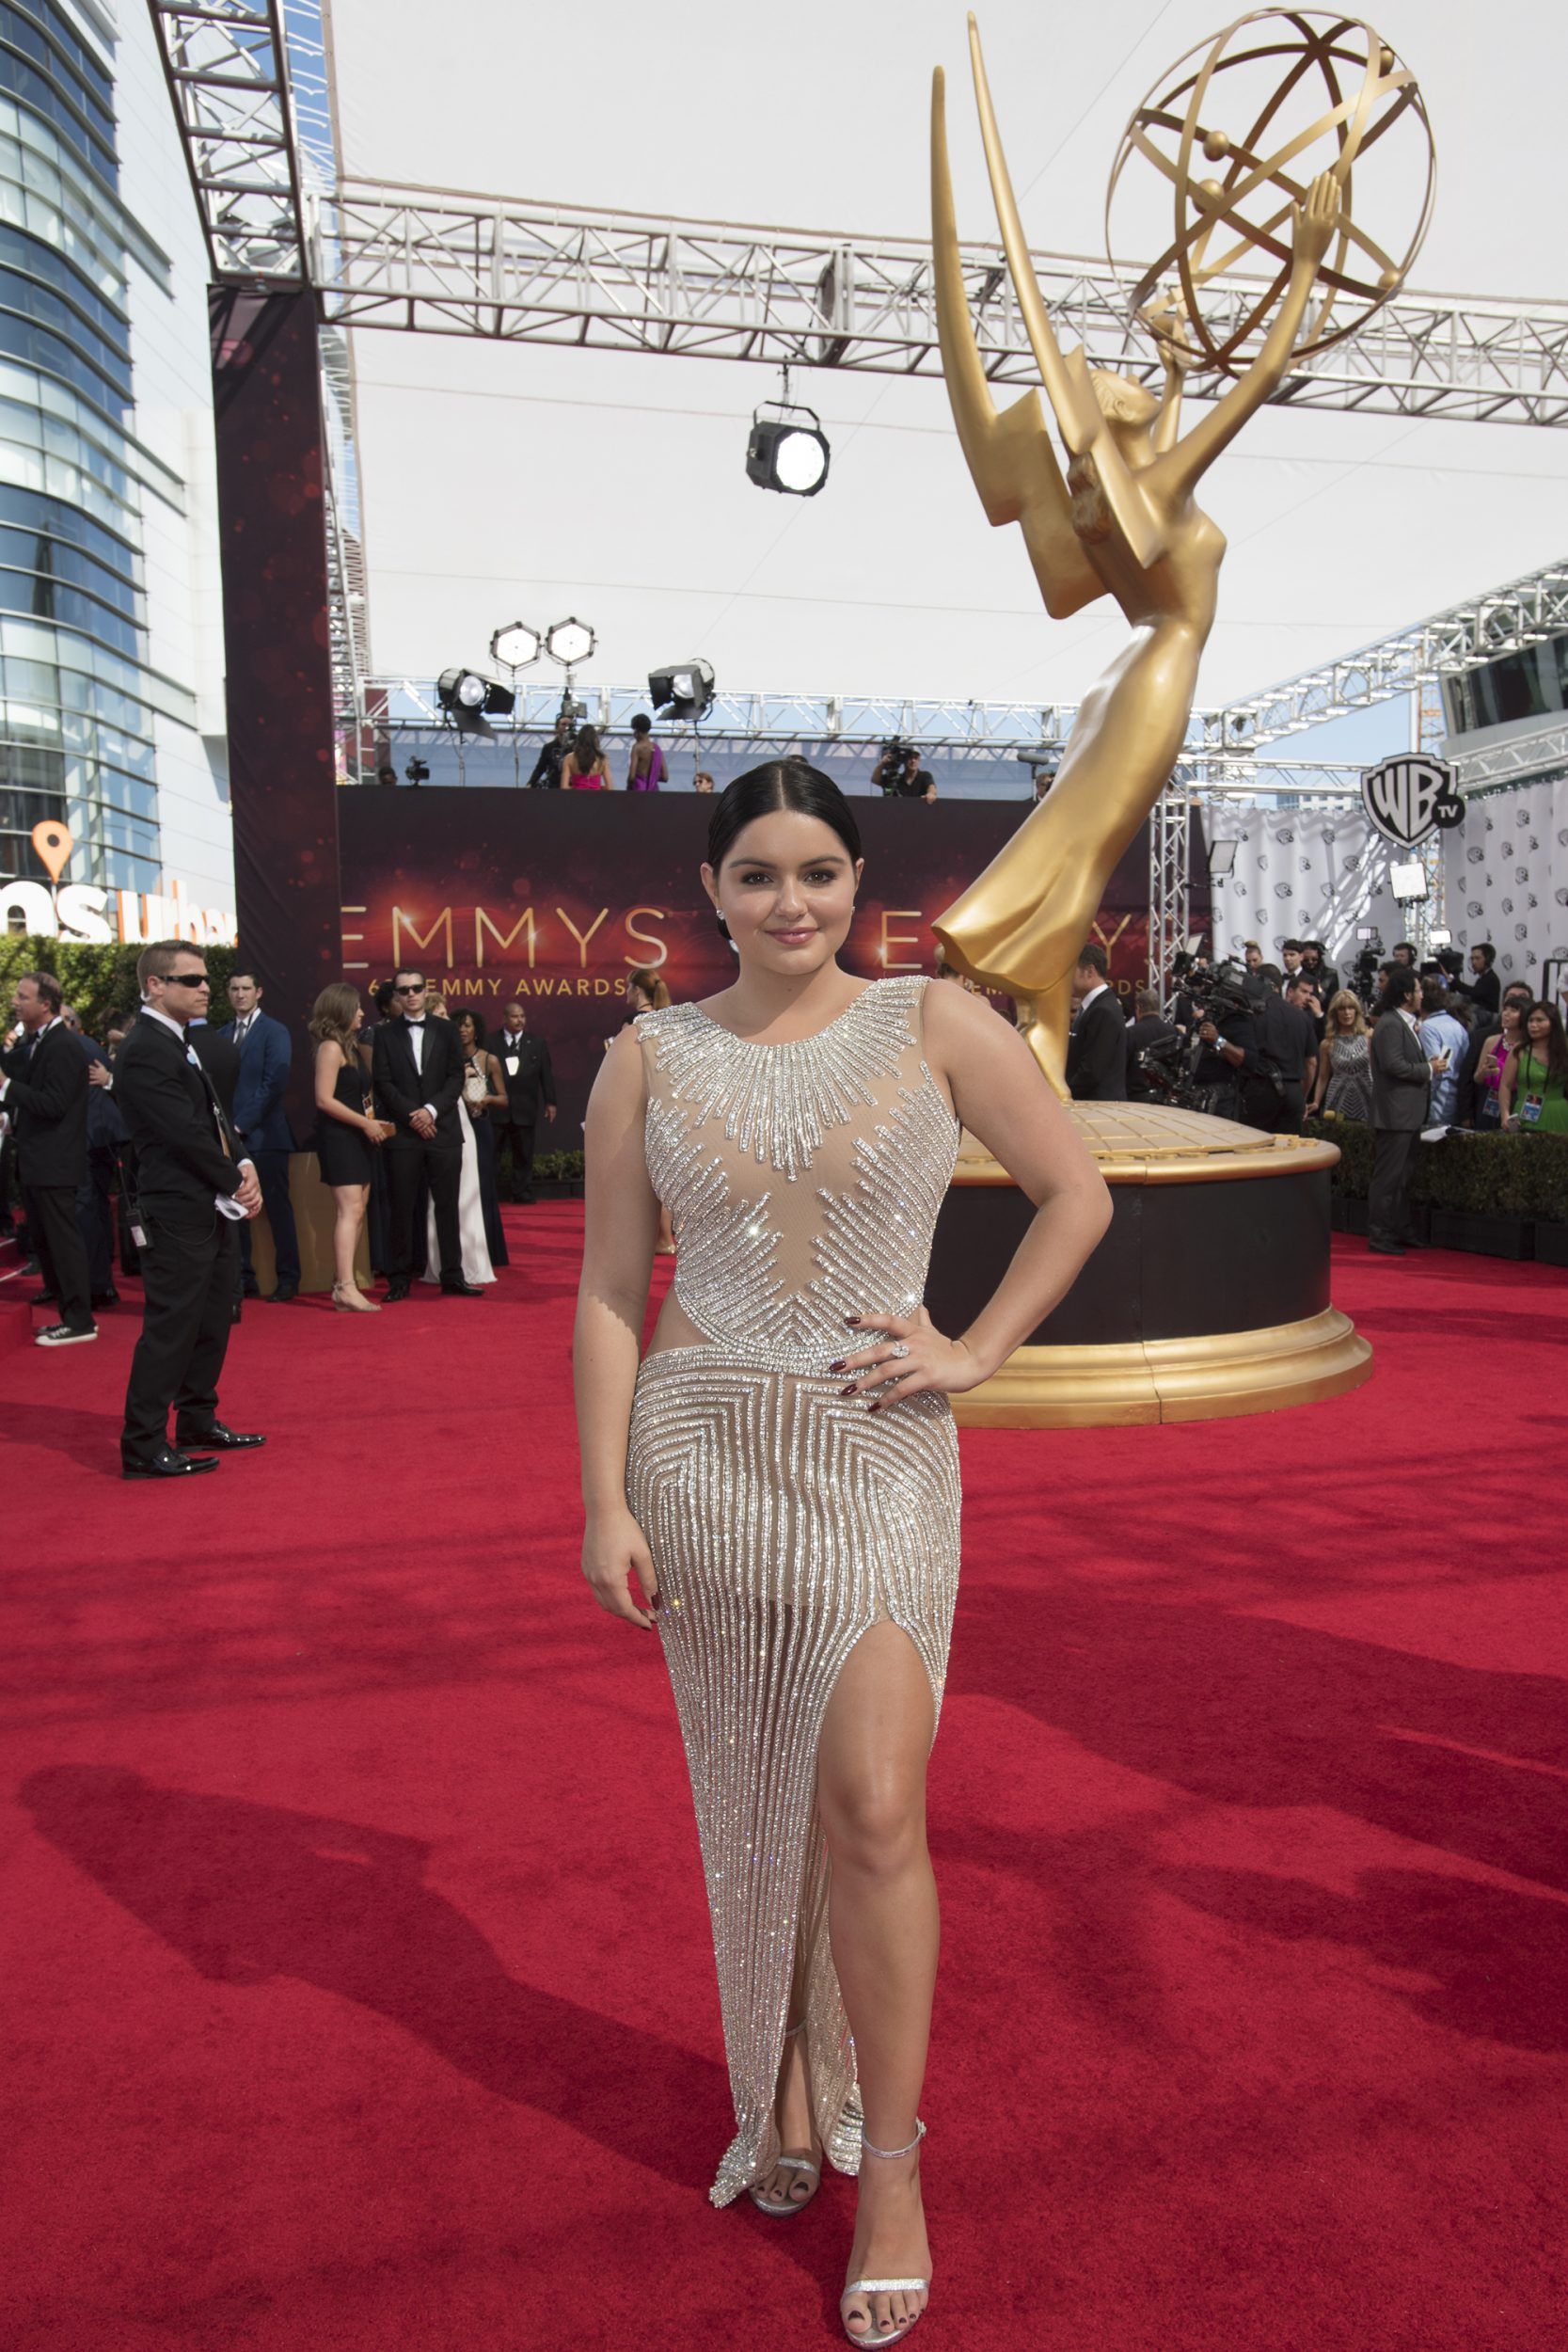 """THE 68TH EMMY(r) AWARDS - """"The 68th Emmy Awards"""" broadcasts live from The Microsoft Theater in Los Angeles, Sunday, September 18 (7:00-11:00 p.m. EDT/4:00-8:00 p.m. PDT), on ABC and is hosted by Jimmy Kimmel. (ABC/Image Group LA) ARIEL WINTER"""